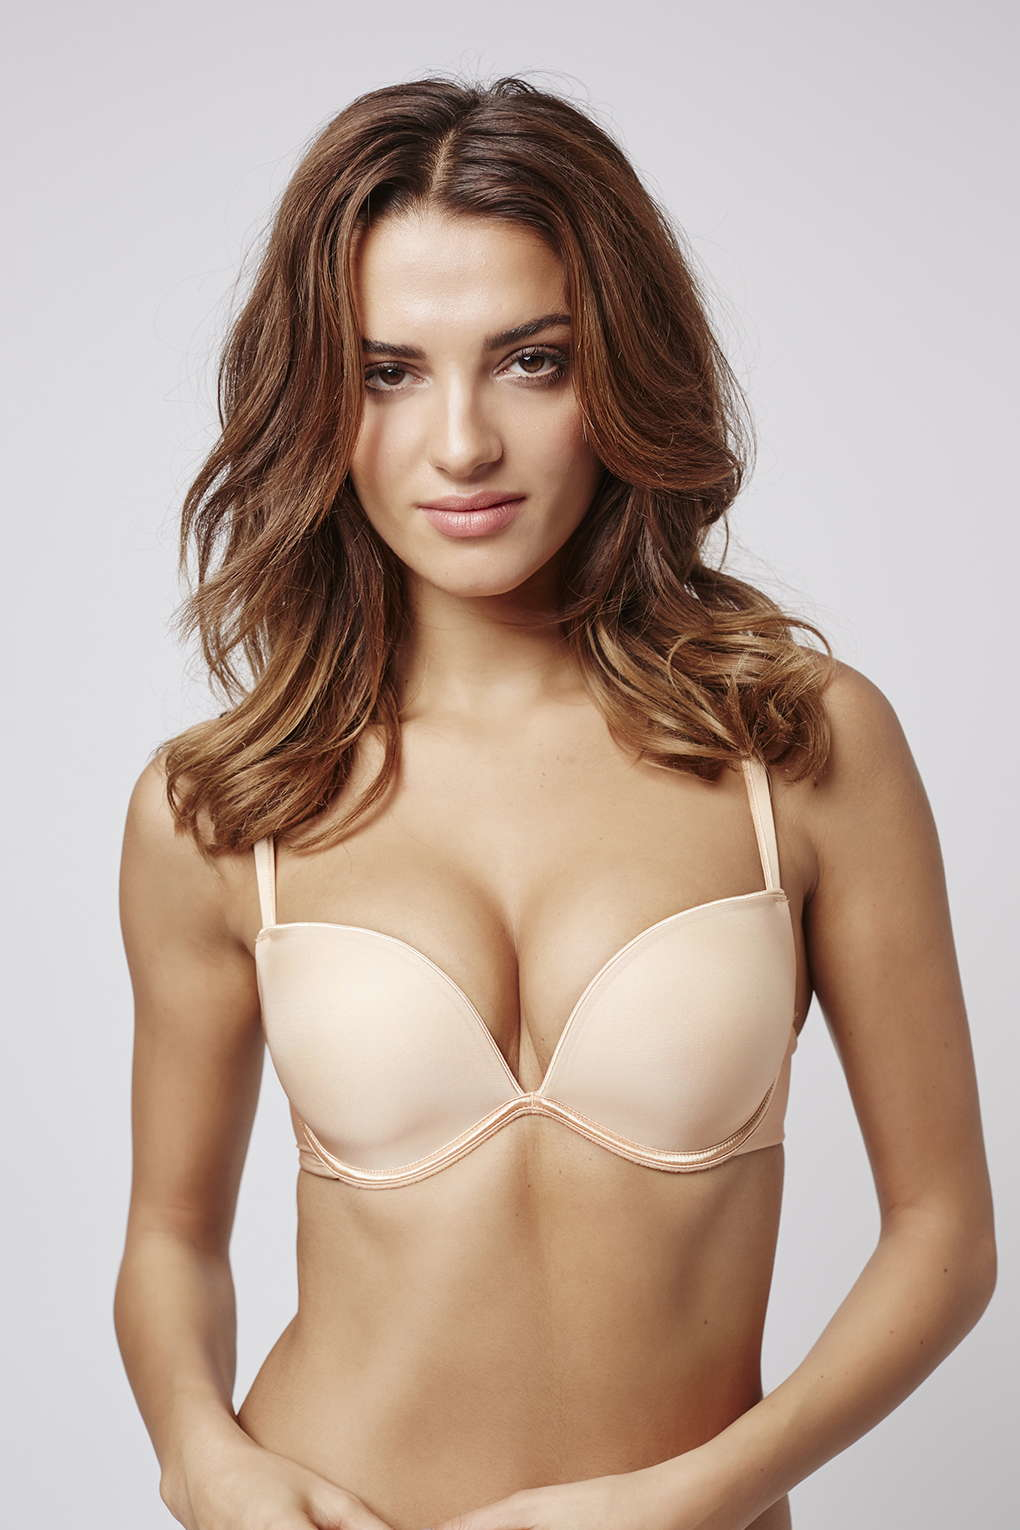 487f158cb TOPSHOP Wonderbra Full Effect Push-up Bra in Natural - Lyst